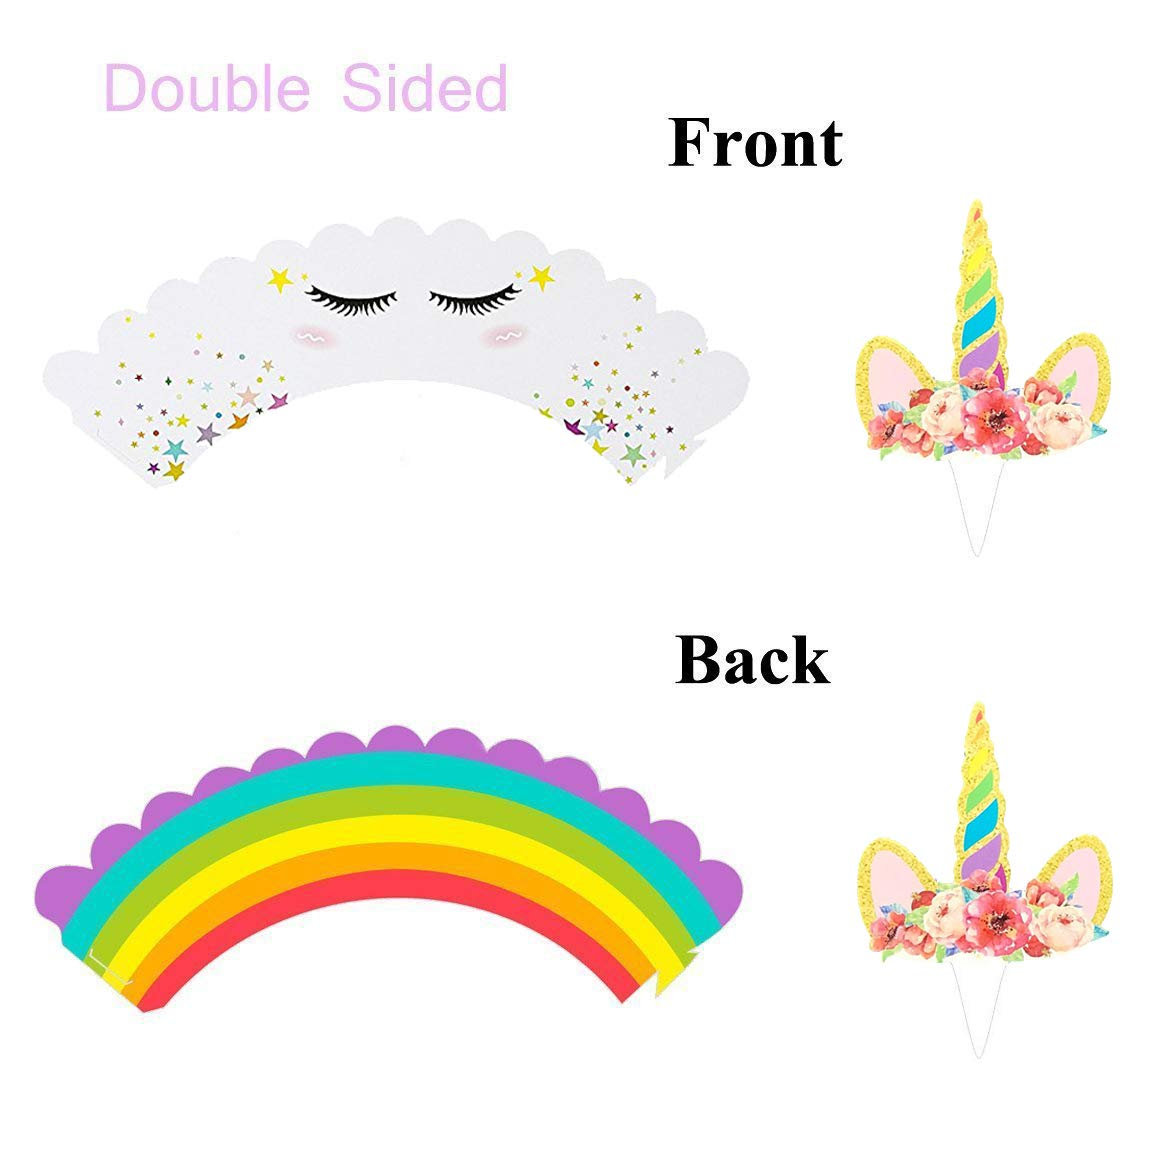 Rainbow Unicorn Cupcake Toppers and Wrappers w BONUS Gold Cupcake Stand - Themed Glitter Horn Cake Topper + Rainbow Wrapper DIY Baking Decorations Kit, Kids Birthday Party Supplies Accessories| 48pcs by Quality Party Supplies (Image #2)